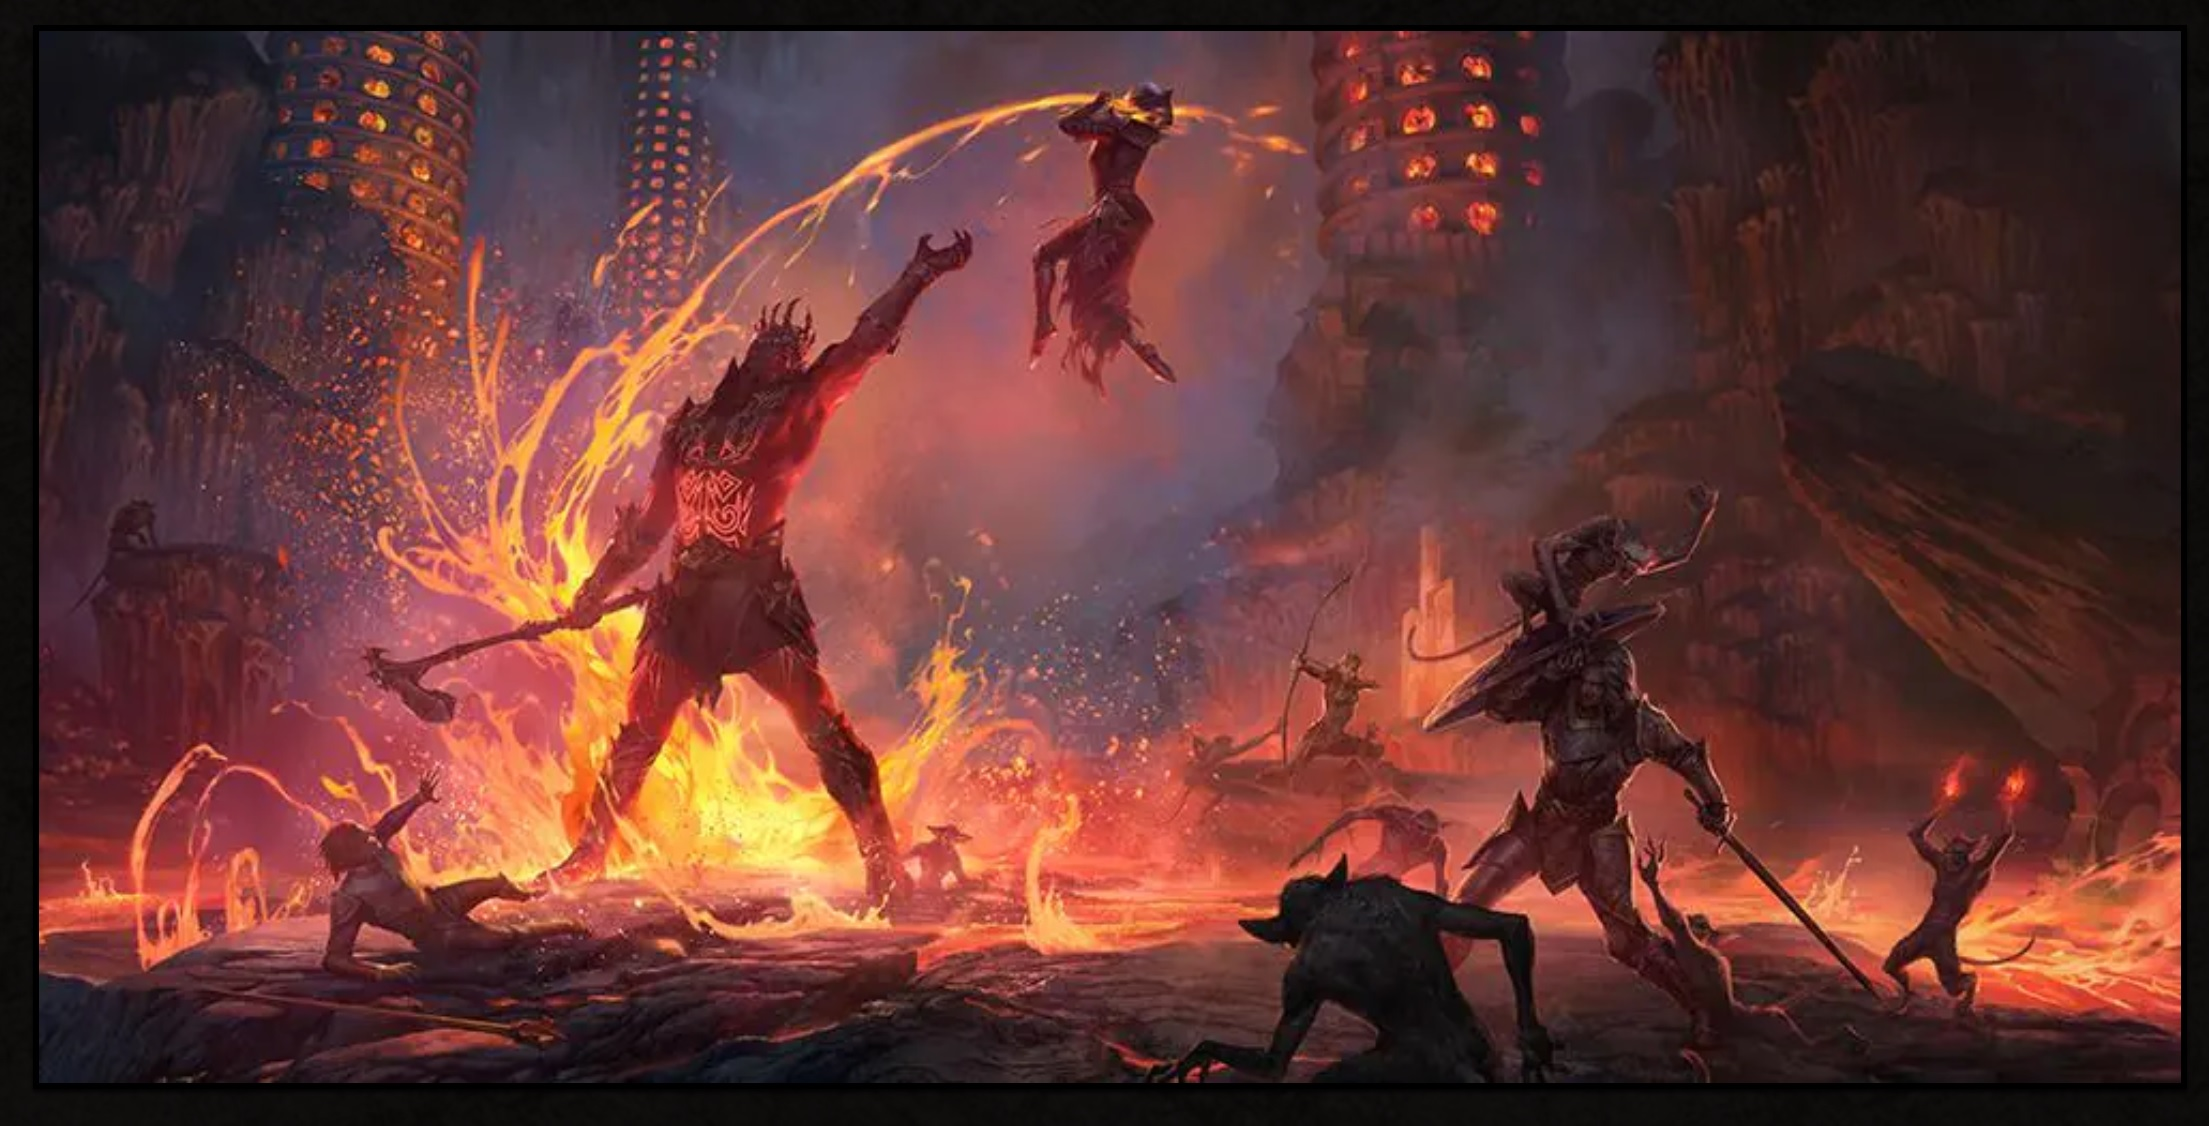 Il DLC The Elder Scrolls Online: Flames of Ambition porta tante novità